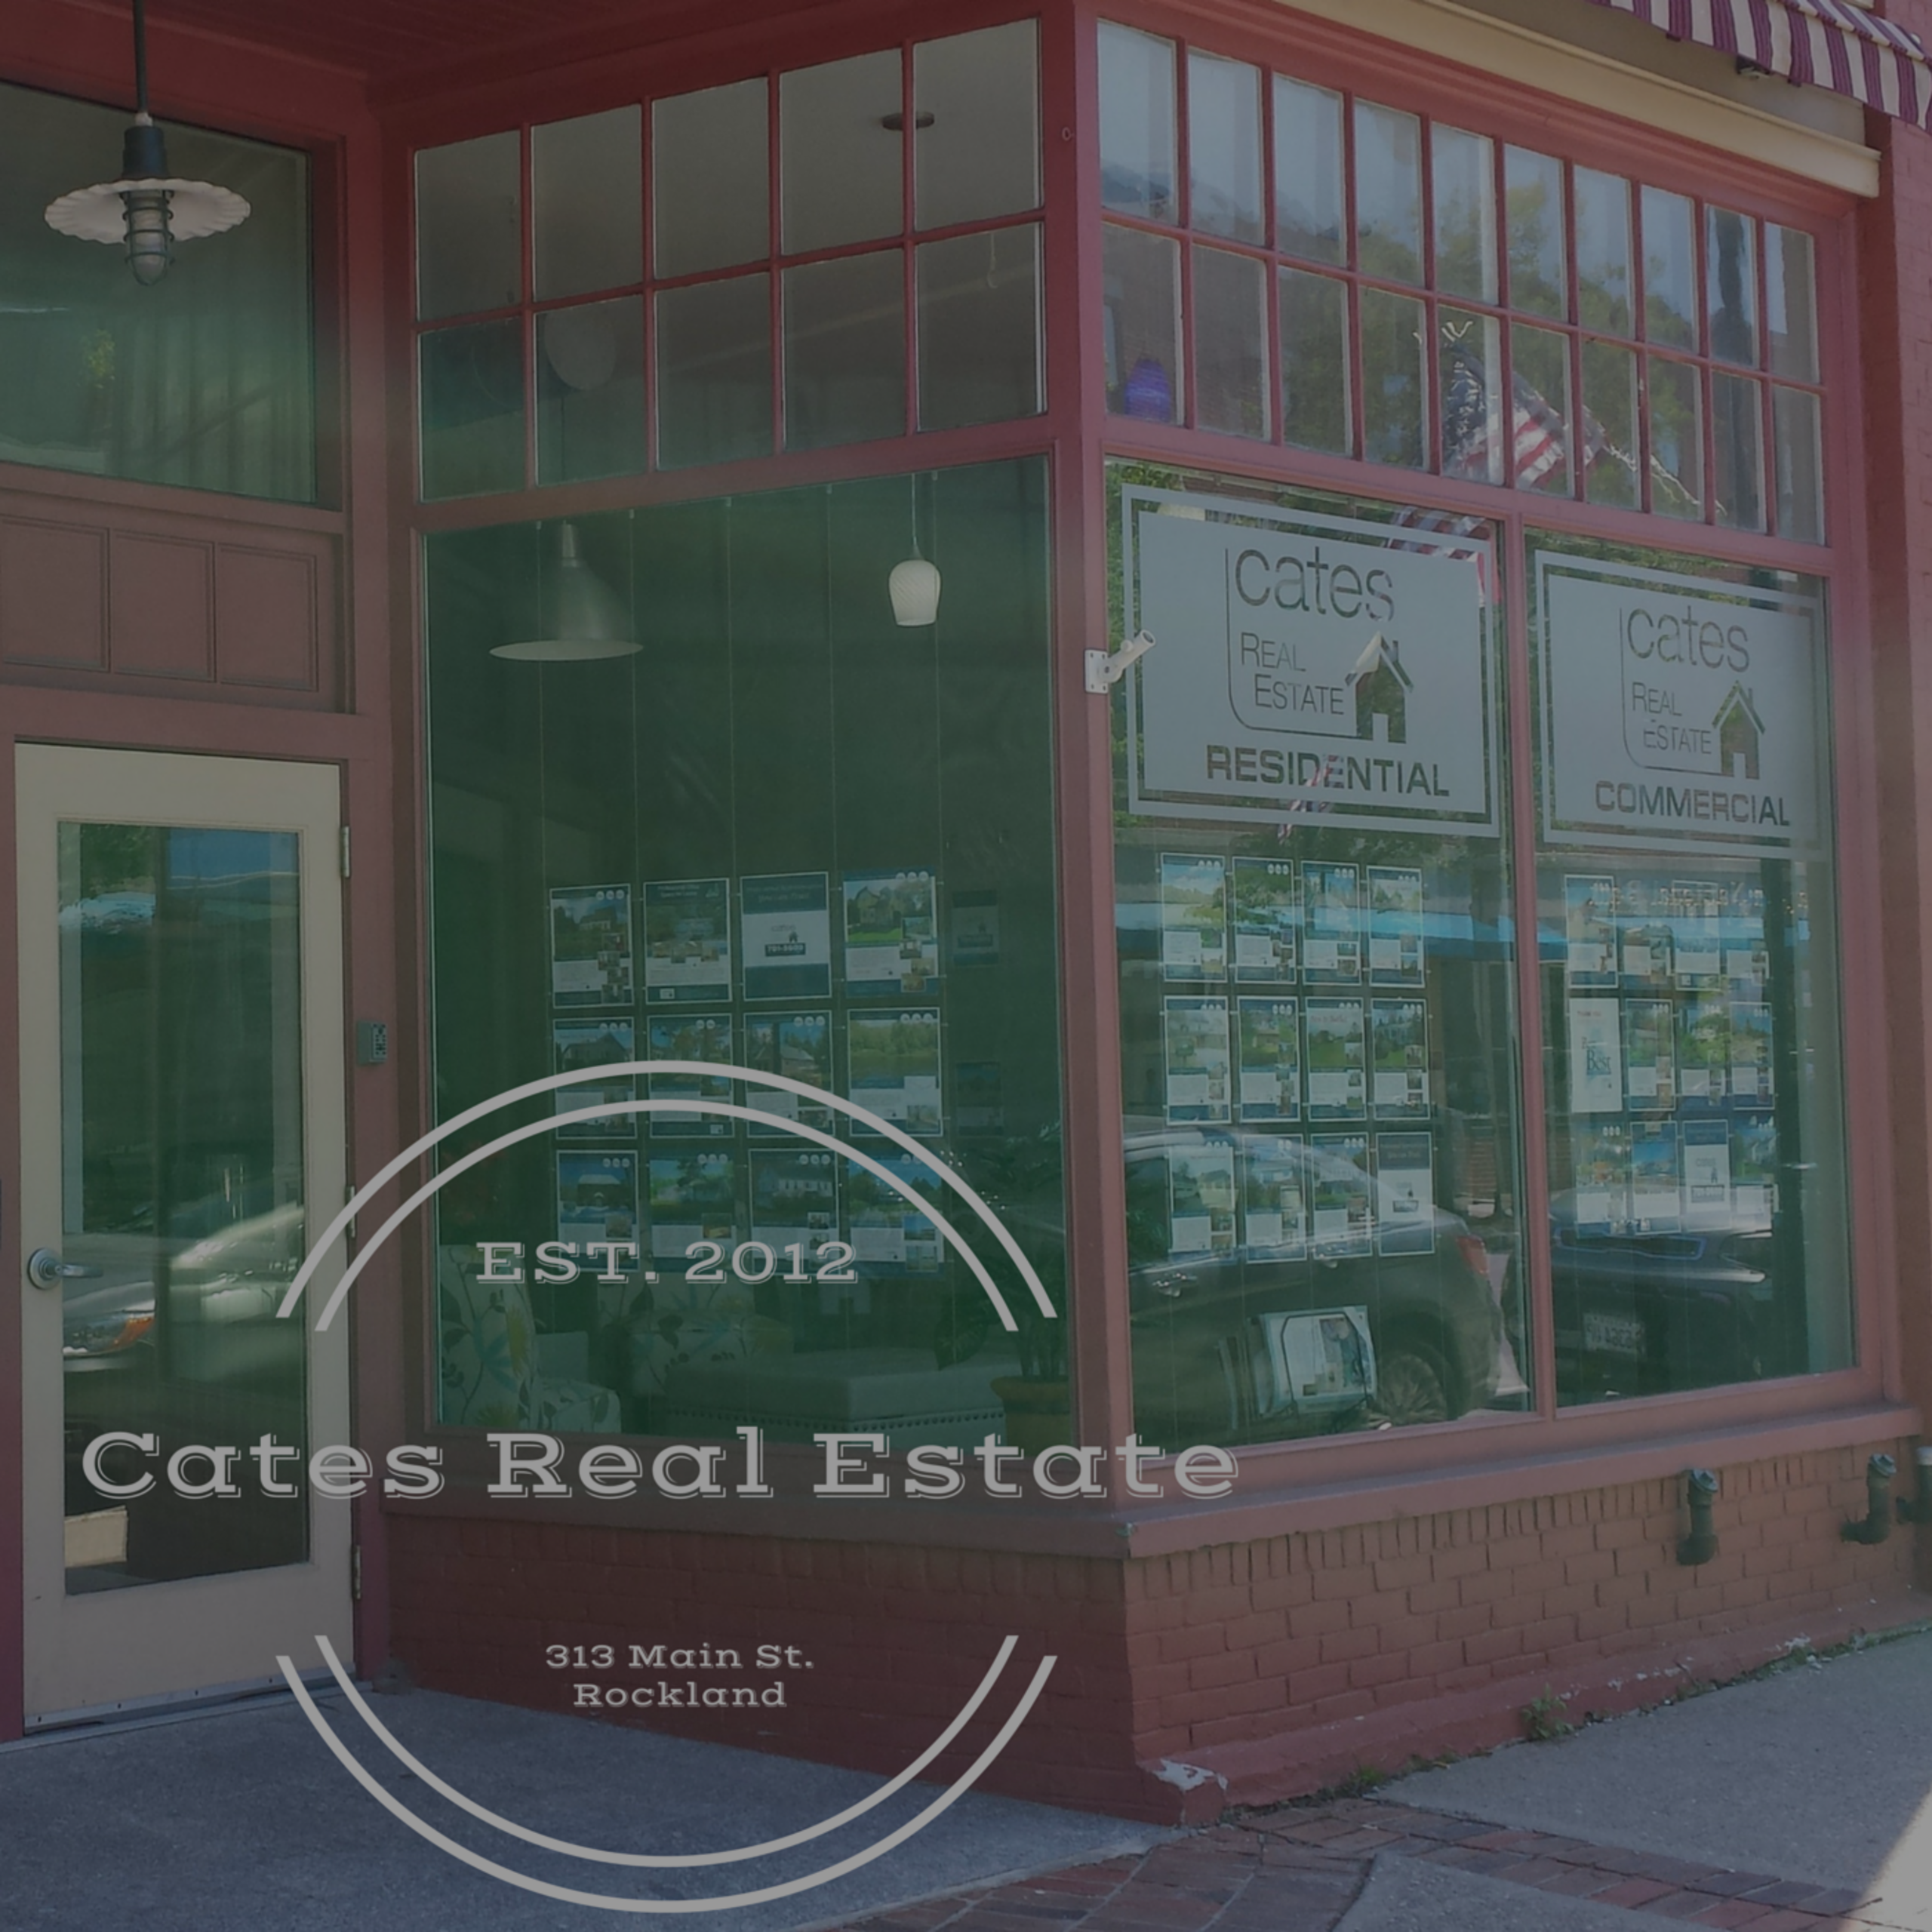 Cates Real Estate is on the Move: 313 Main Street, Rockland